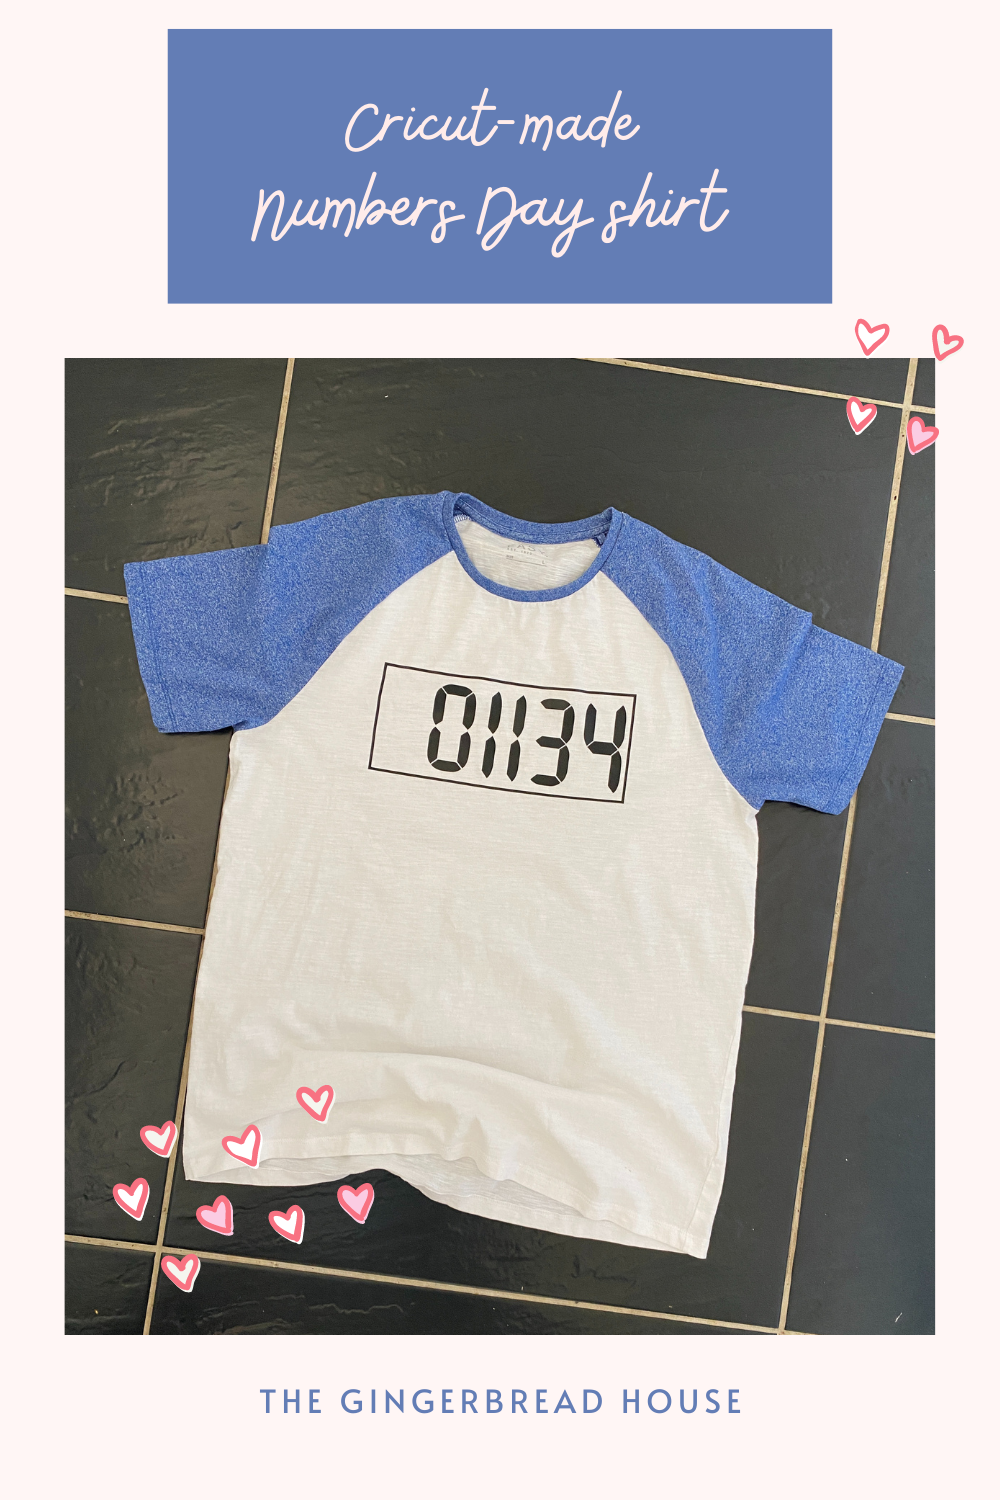 Cricut made Numbers Day shirt